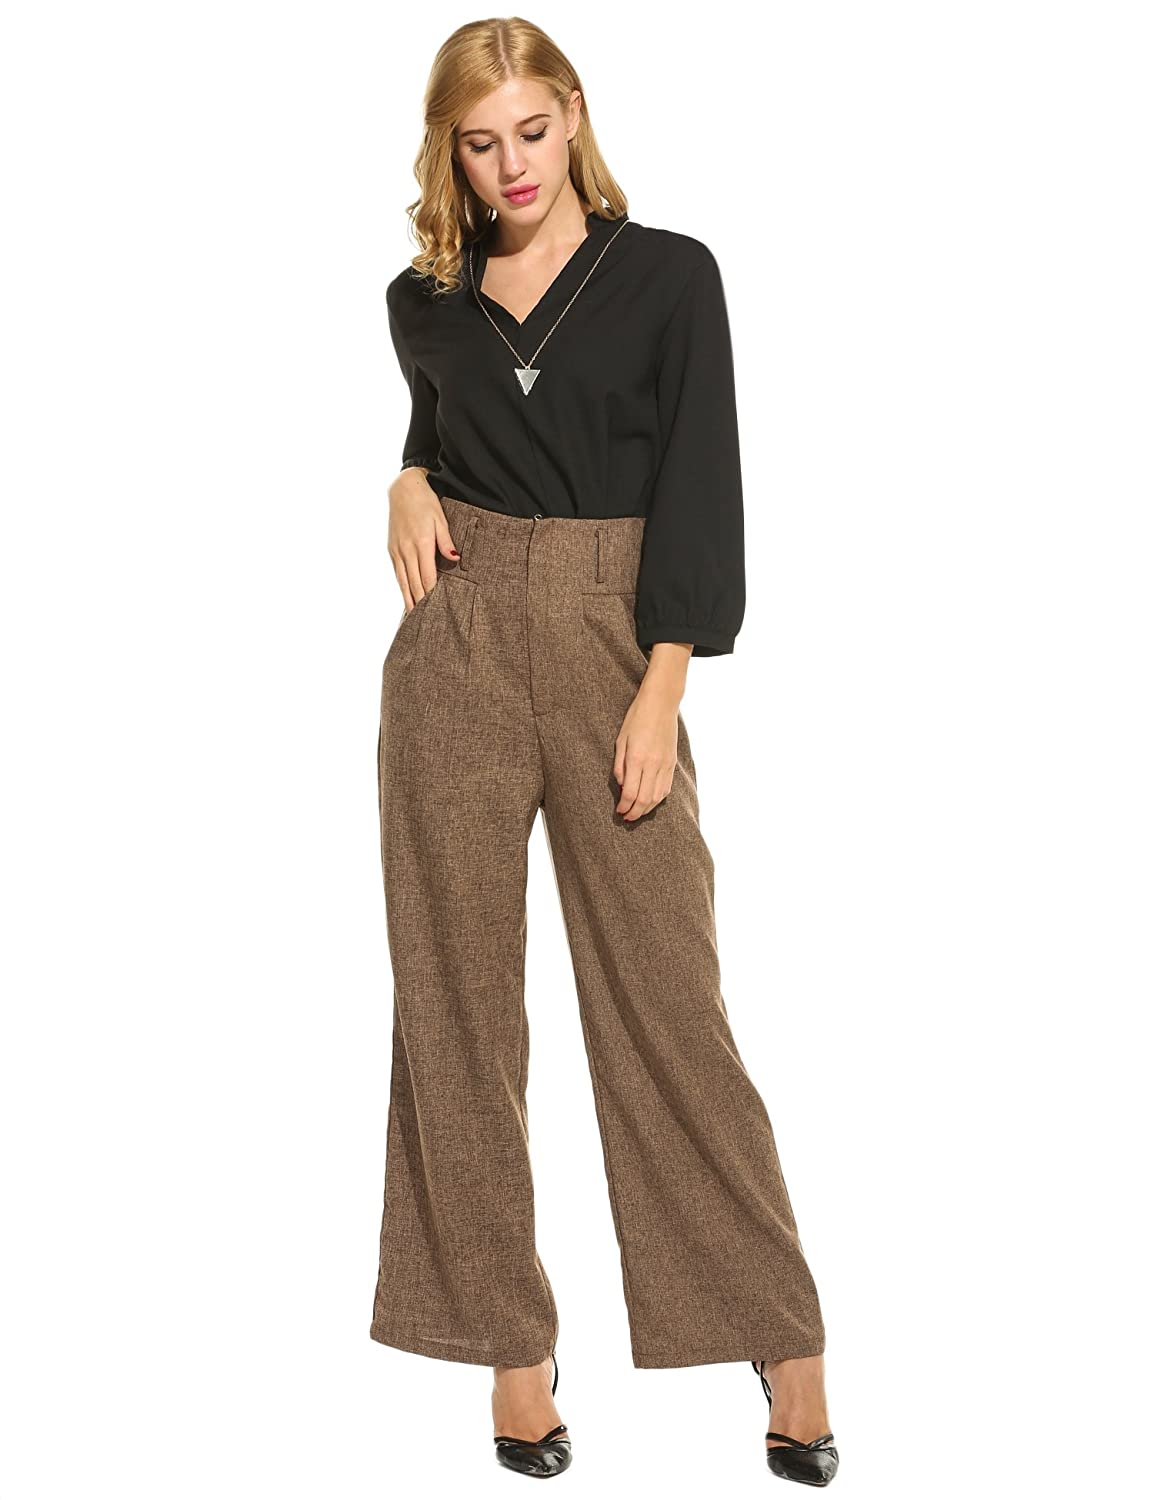 Vintage High Waisted Trousers, Sailor Pants, Jeans Zeagoo Women Casual Superline Wide Flare Leg High Waist Zipper Solid Long Pants $25.99 AT vintagedancer.com